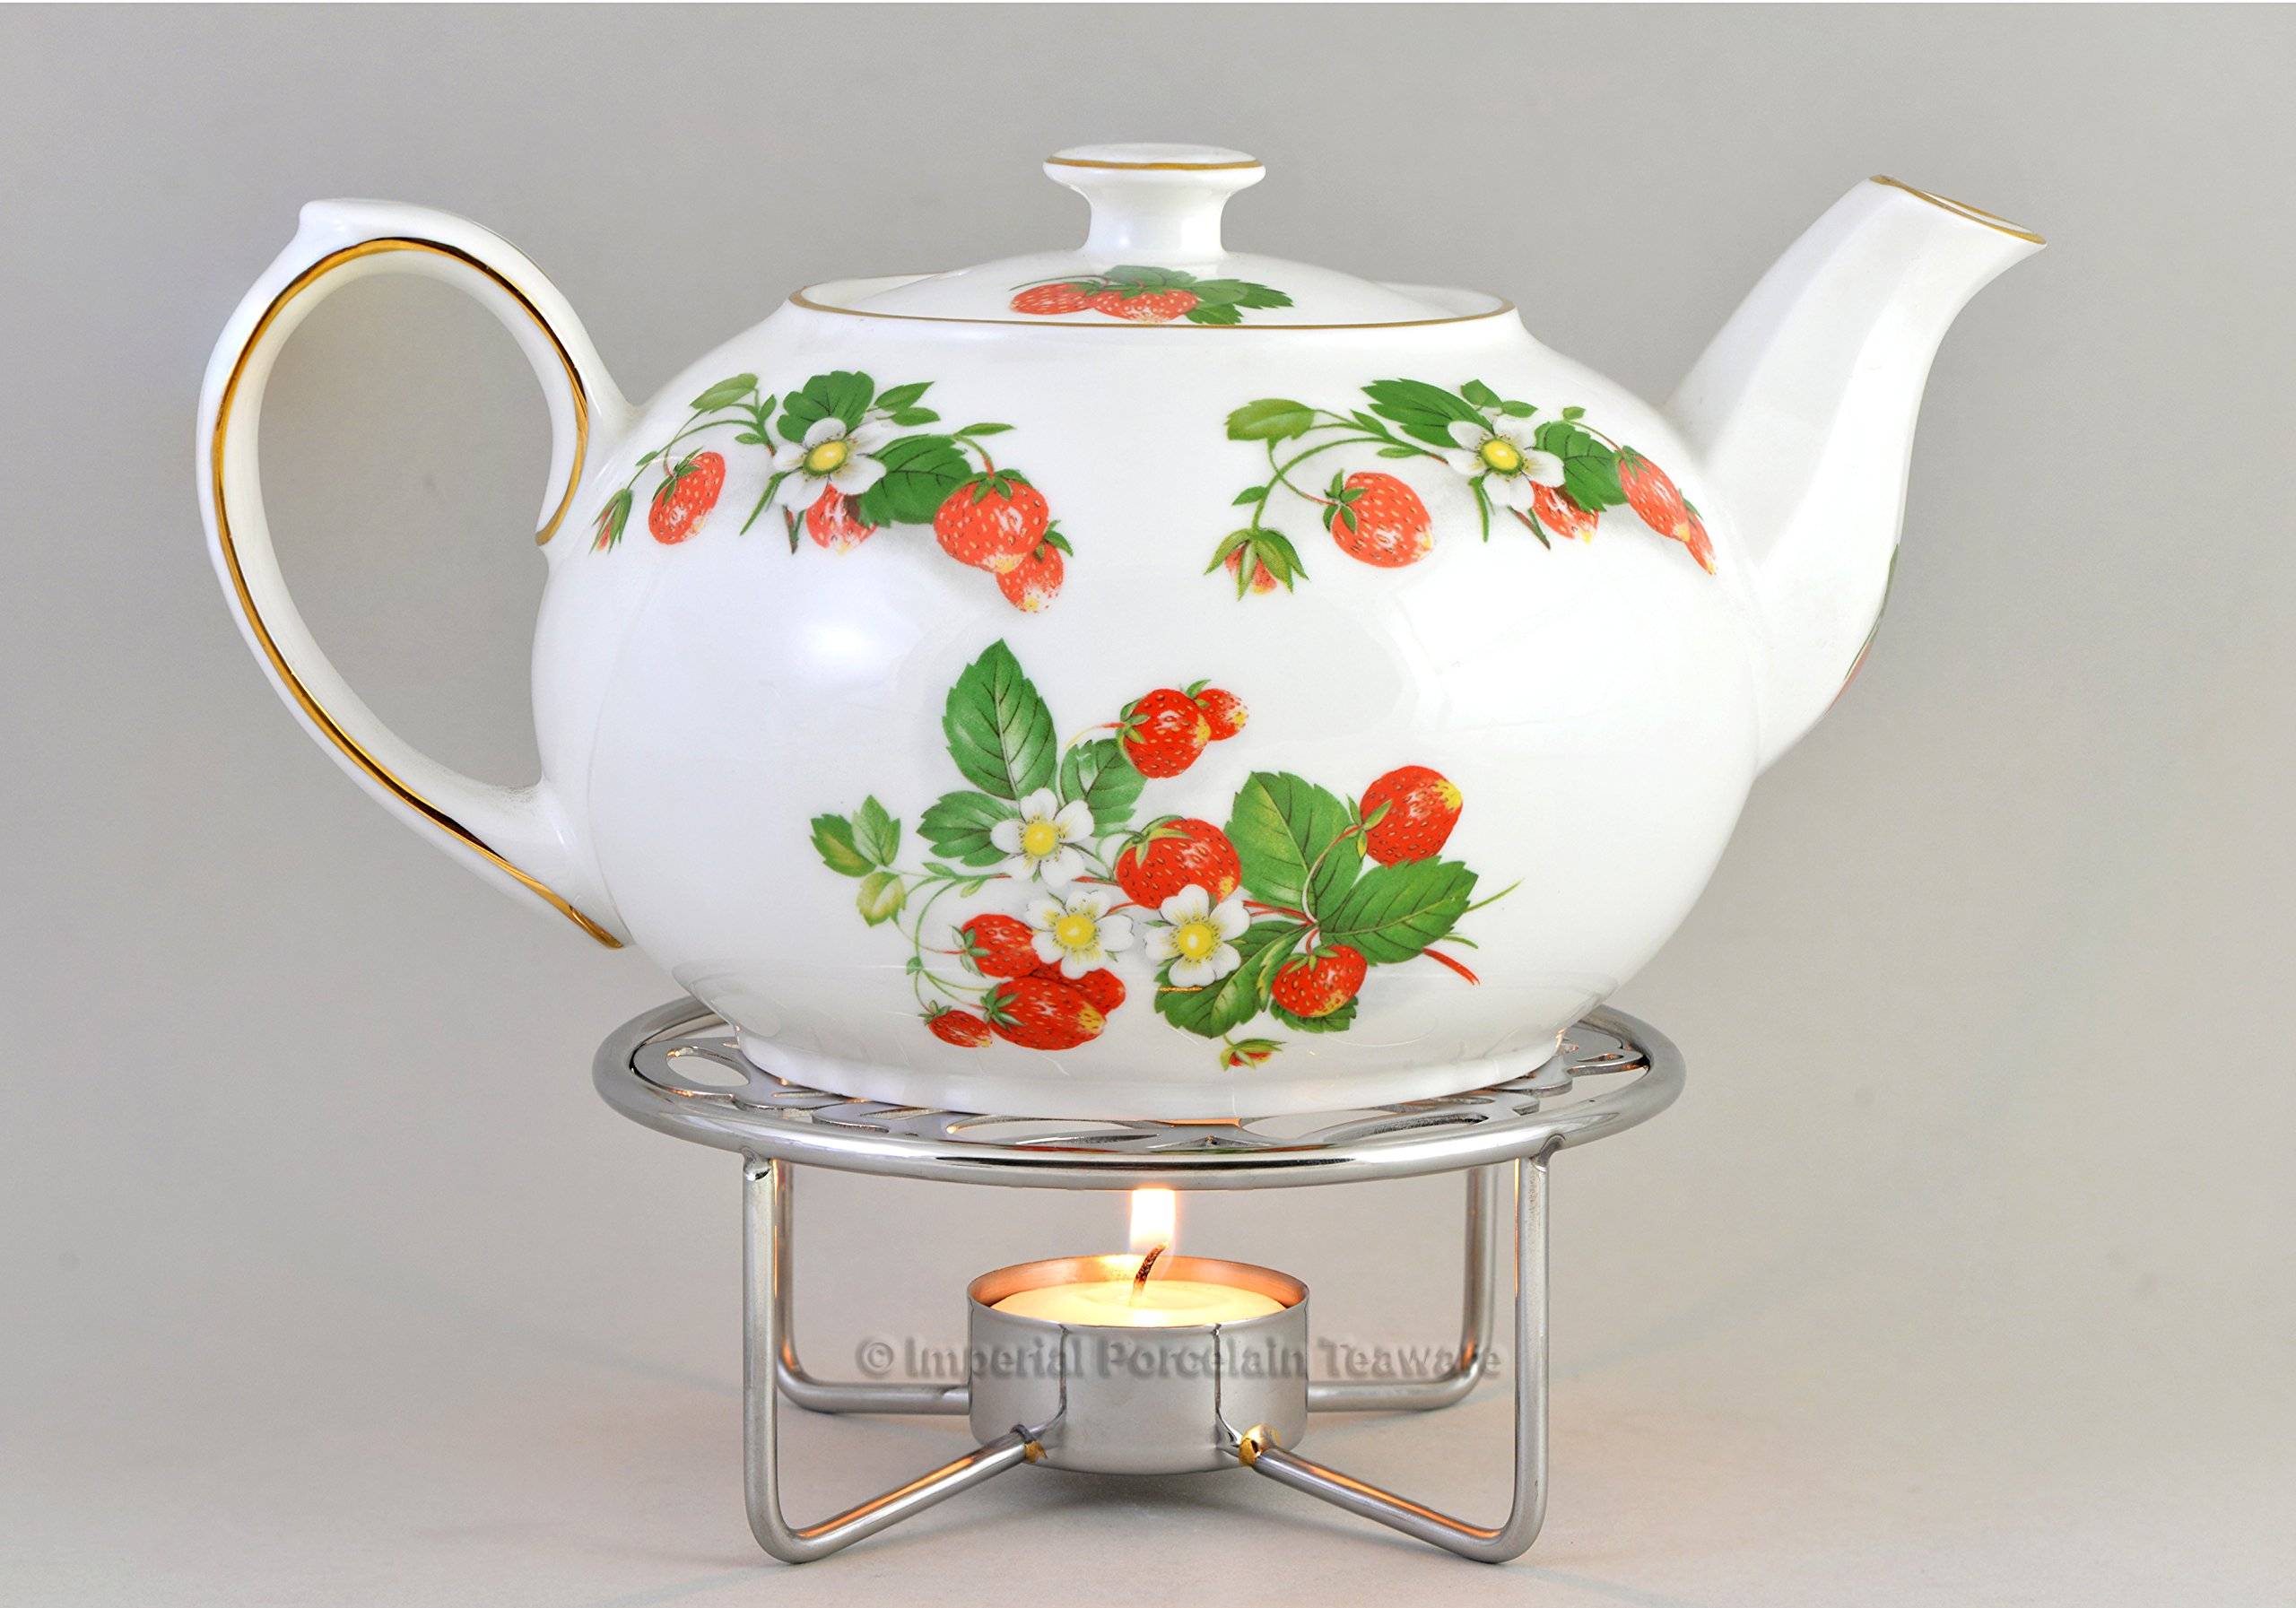 IMPERIAL PORCELAIN TEAWARE Teapot Warmer - Chrome Plated